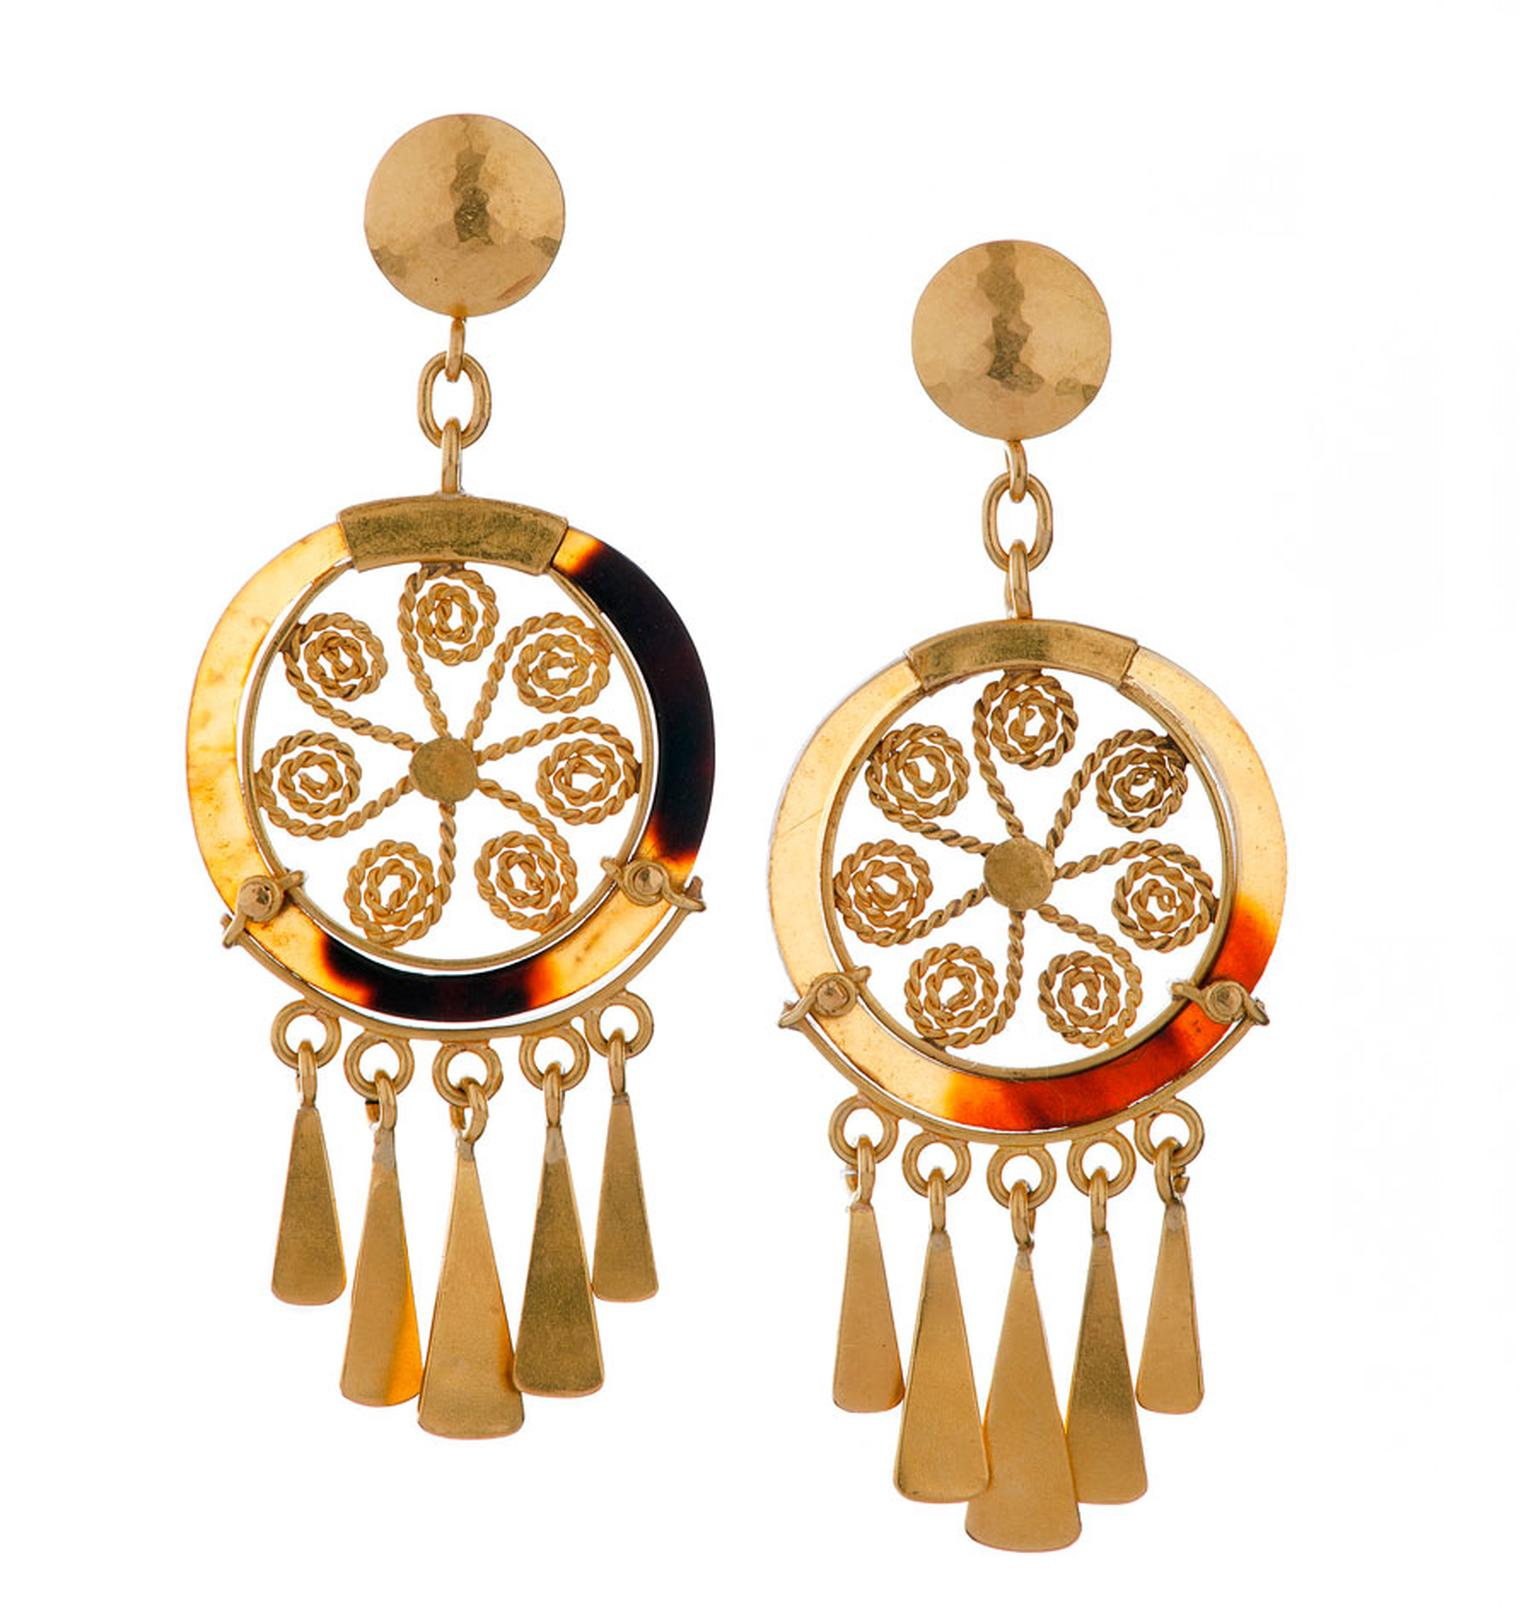 Lisa-Black-Paya-and-Gold-Spiral-Earrings